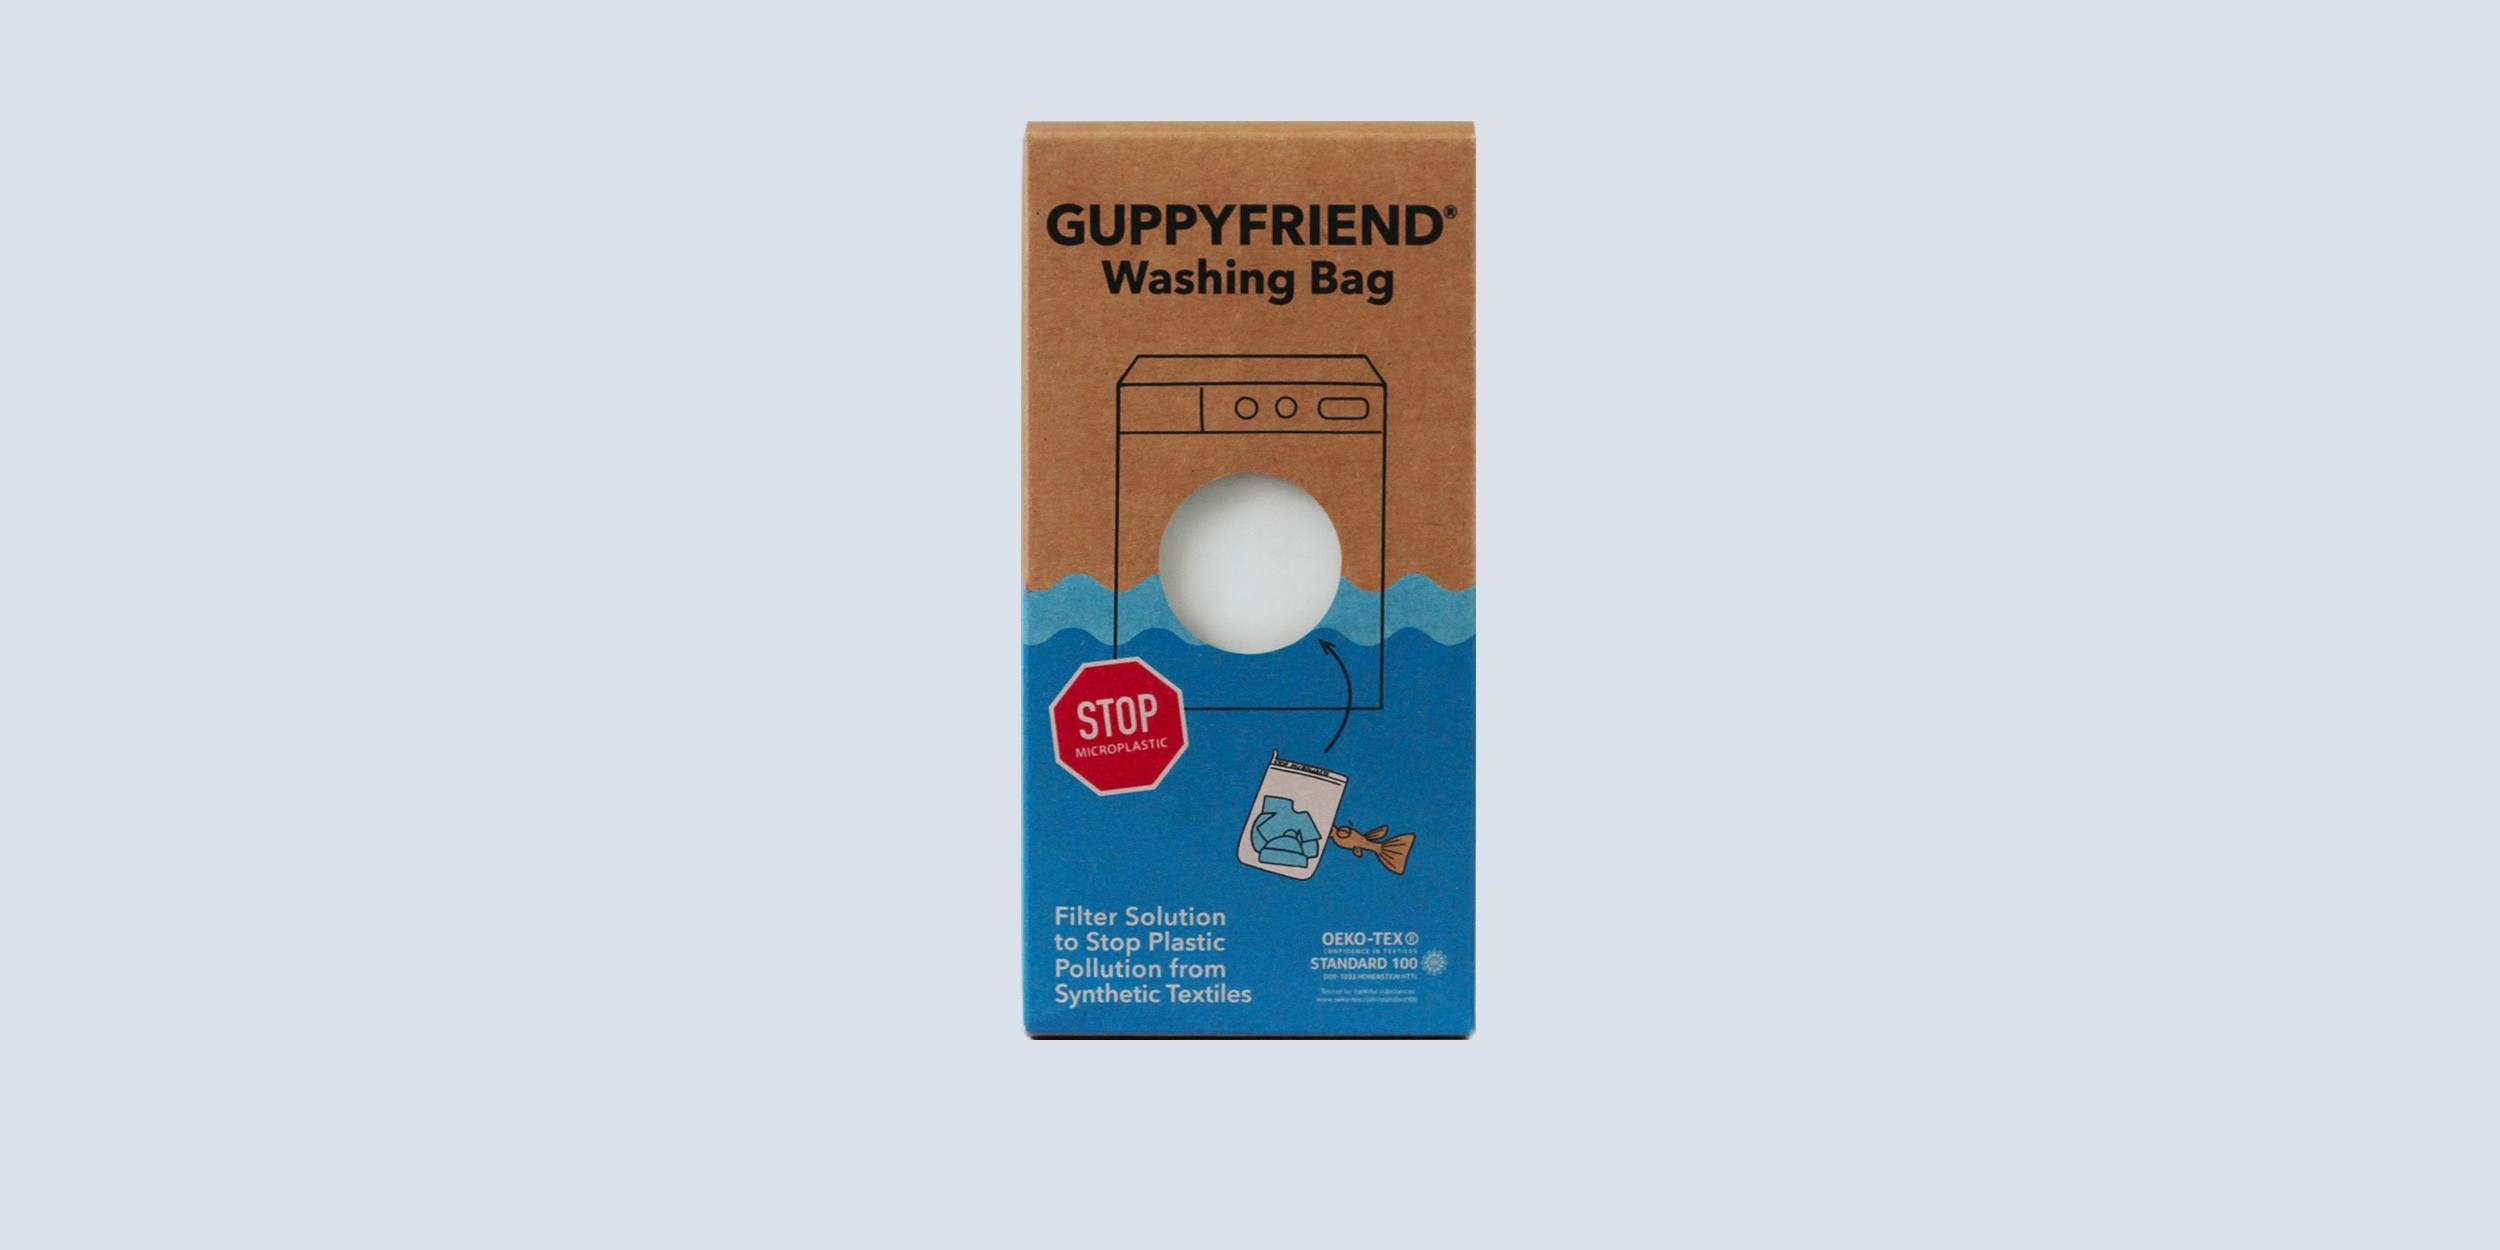 Washing bag GuppyFriend